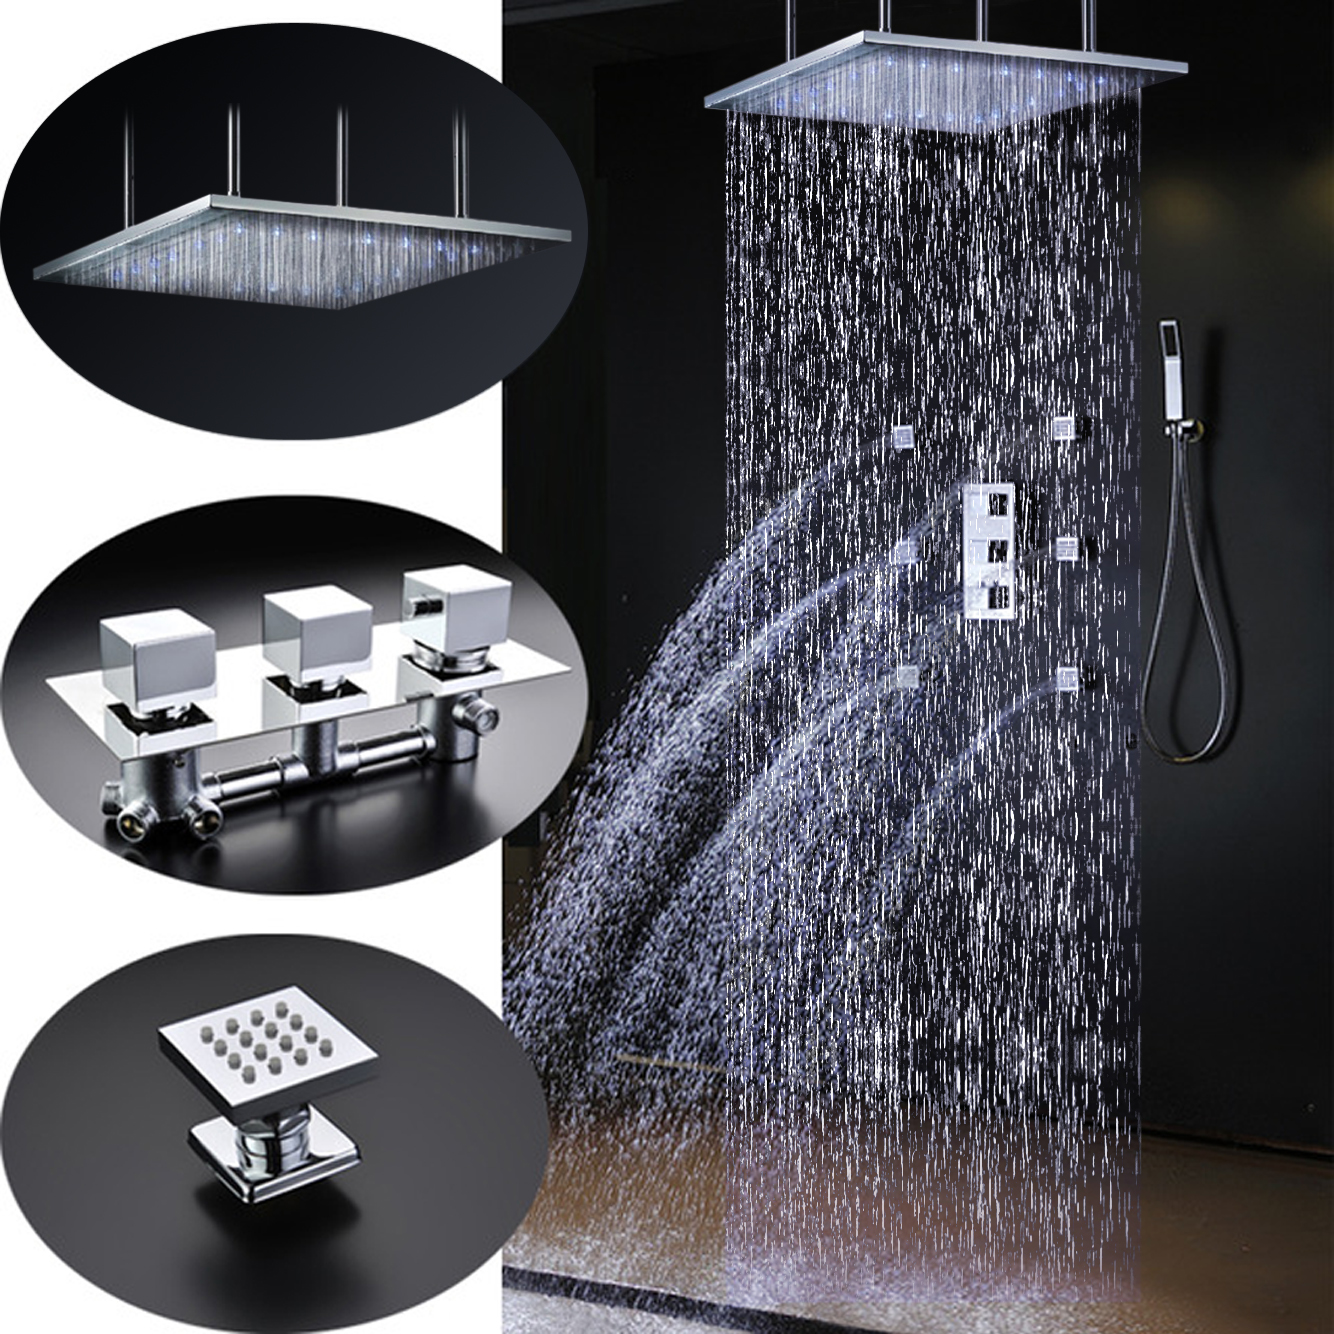 Sicily 20 40 Large Chrome Led Rain Shower Head With Body Jets